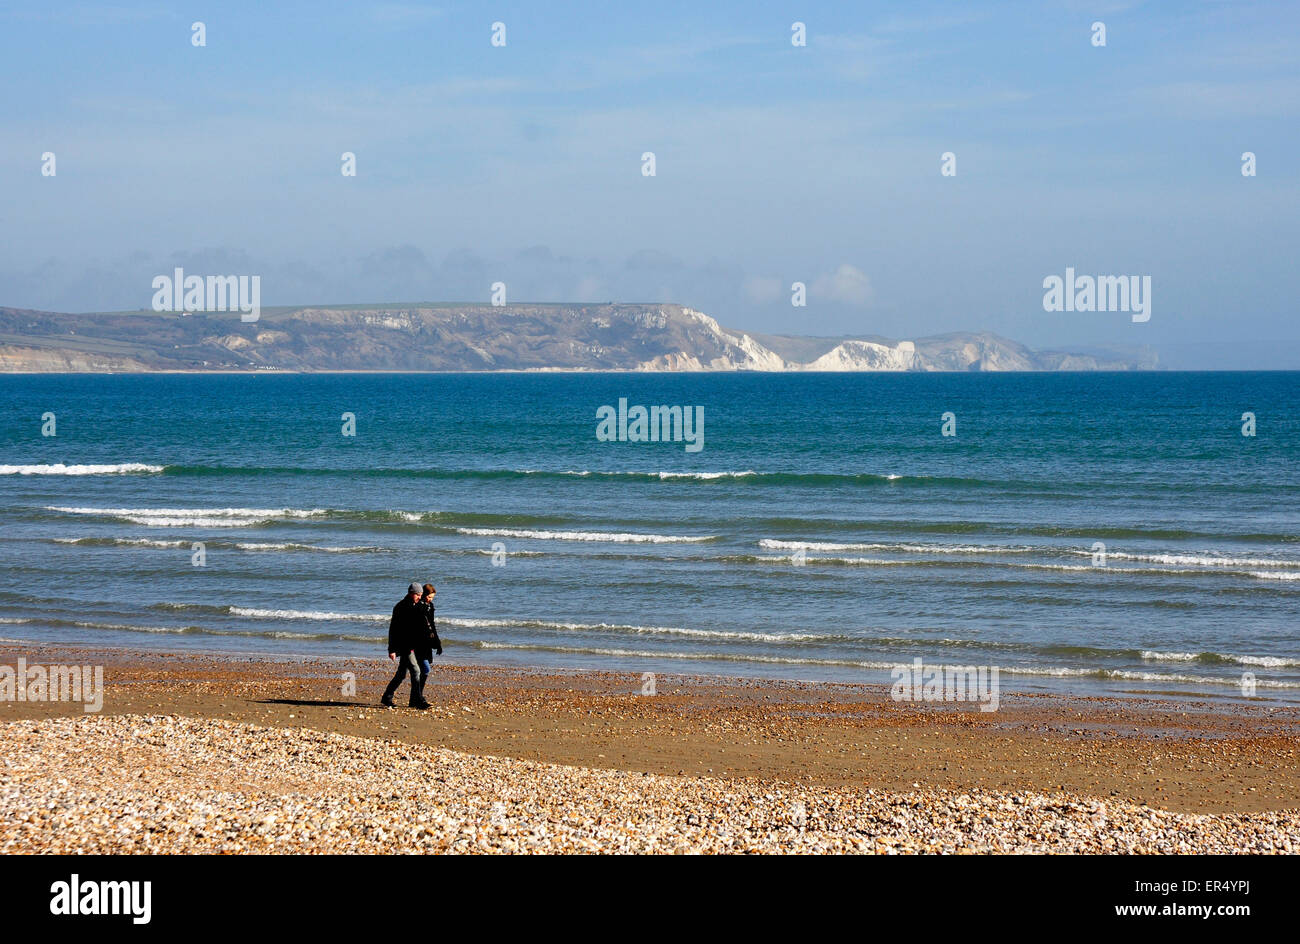 Dorset - Weymouth - couple walking on the beach - chalk cliffs backdrop across the bay - gentle waves lapping shore - Stock Image